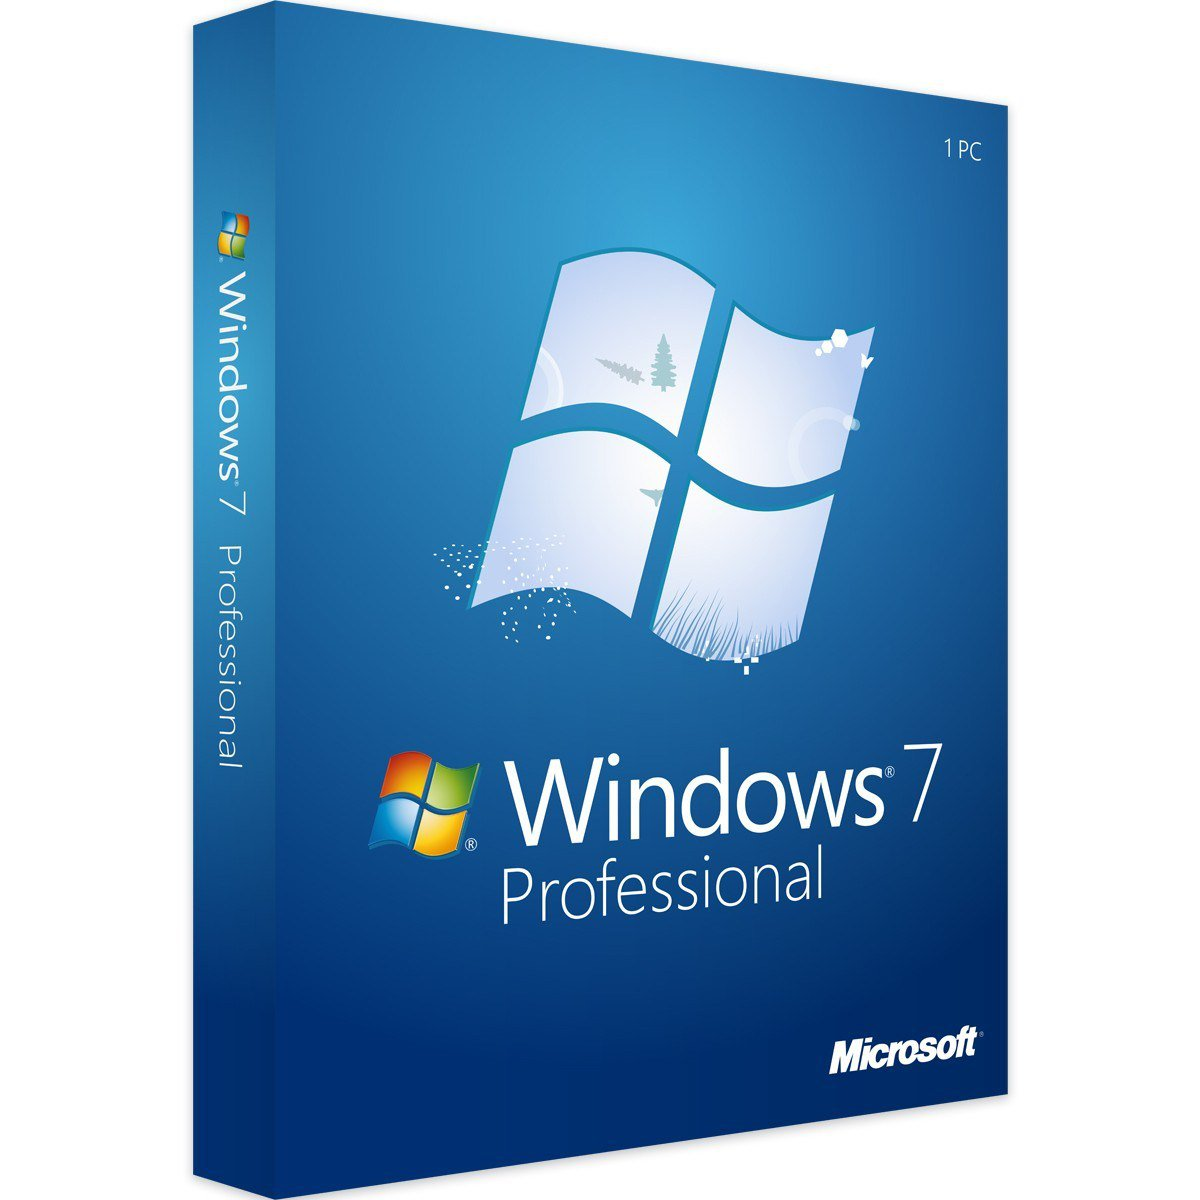 Windows 7 Profesional